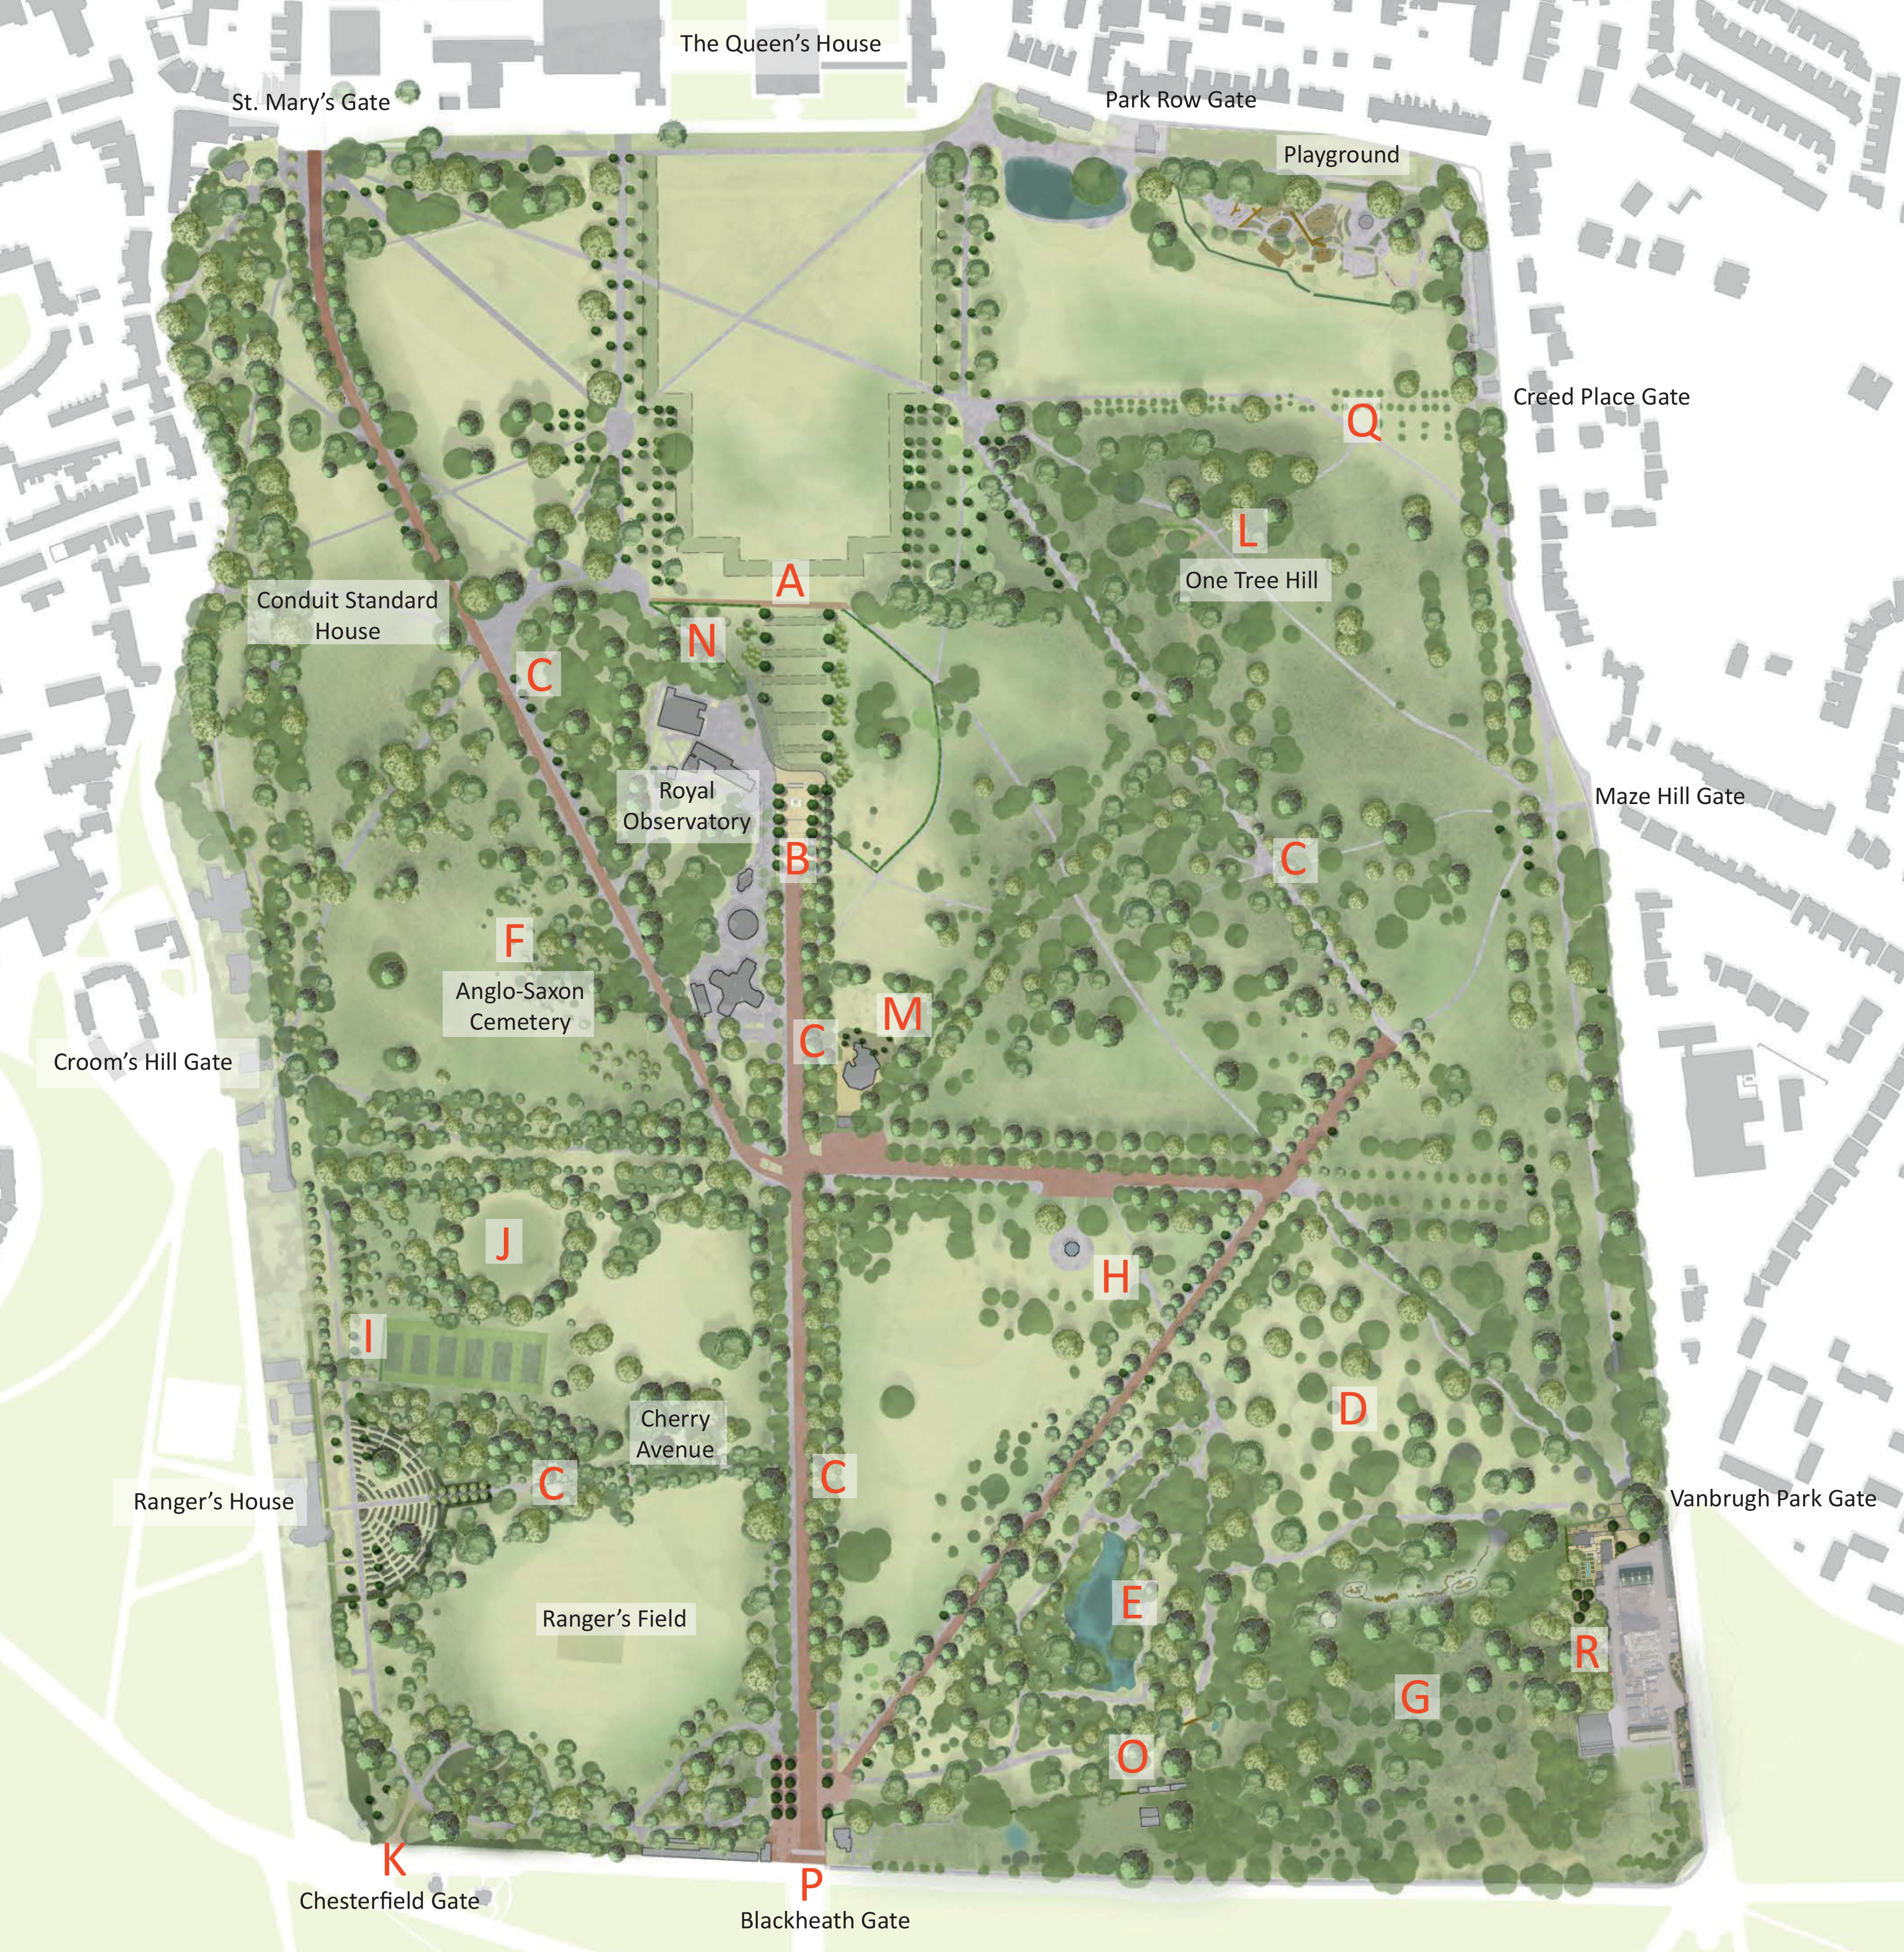 The Greenwich Park Revealed Masterplan